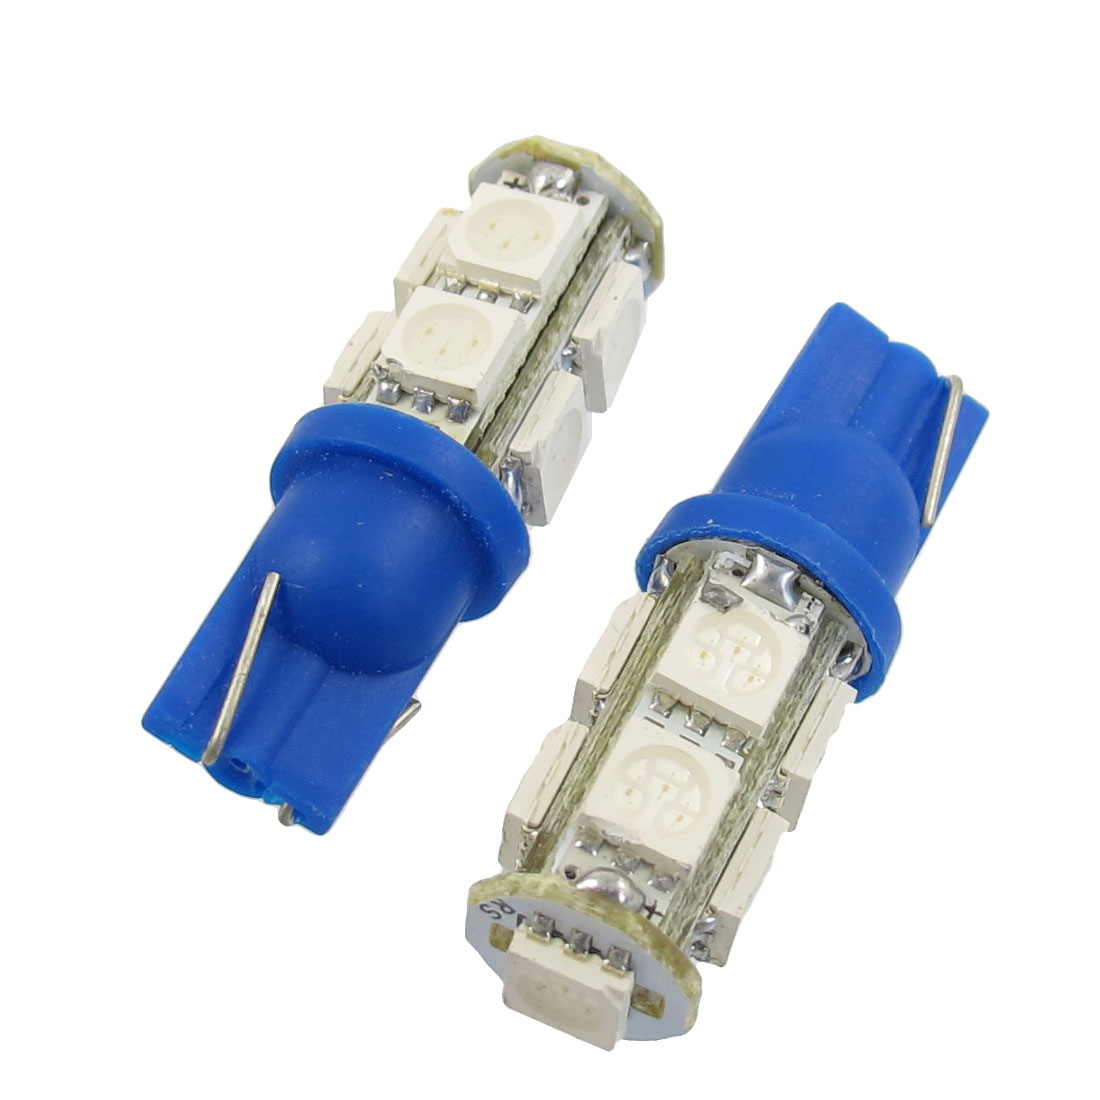 2 Pcs T10 194 168 W5W Blue 5050 SMD 9 LED Car Light Bulb lamp 12V